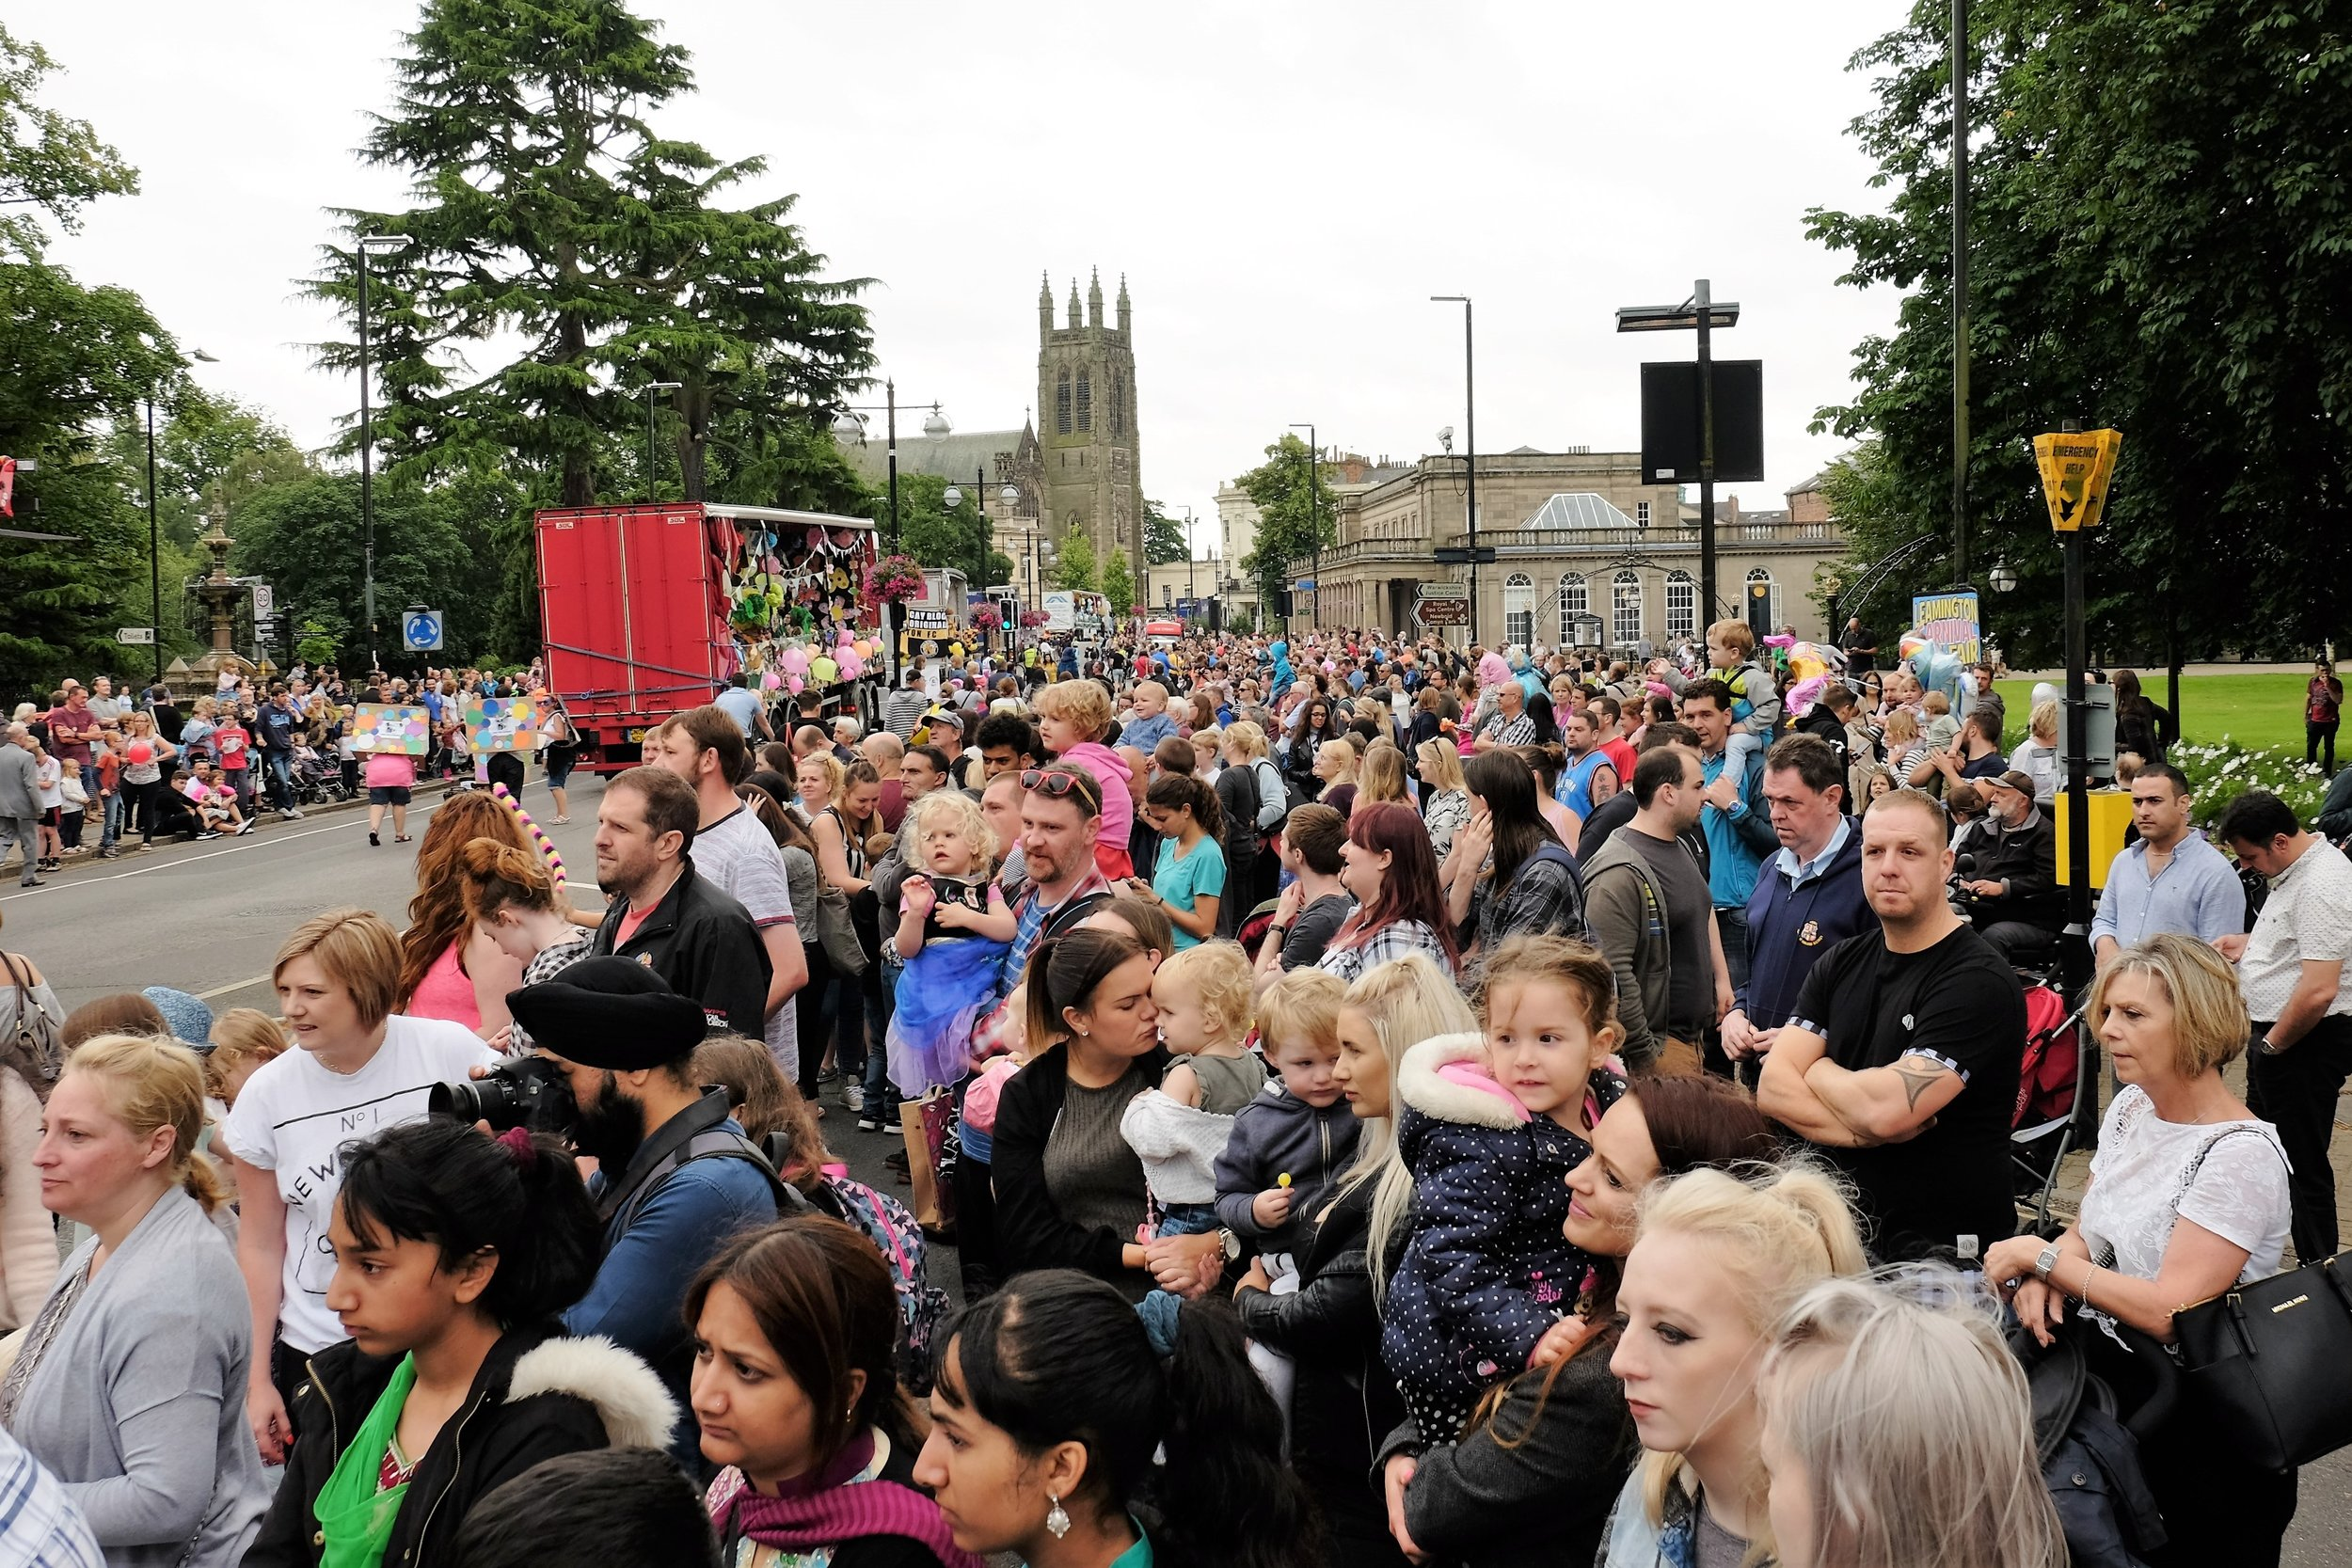 Leamington Spa Event photographer - leamington carnival photography crowd scene warwickshire.JPG